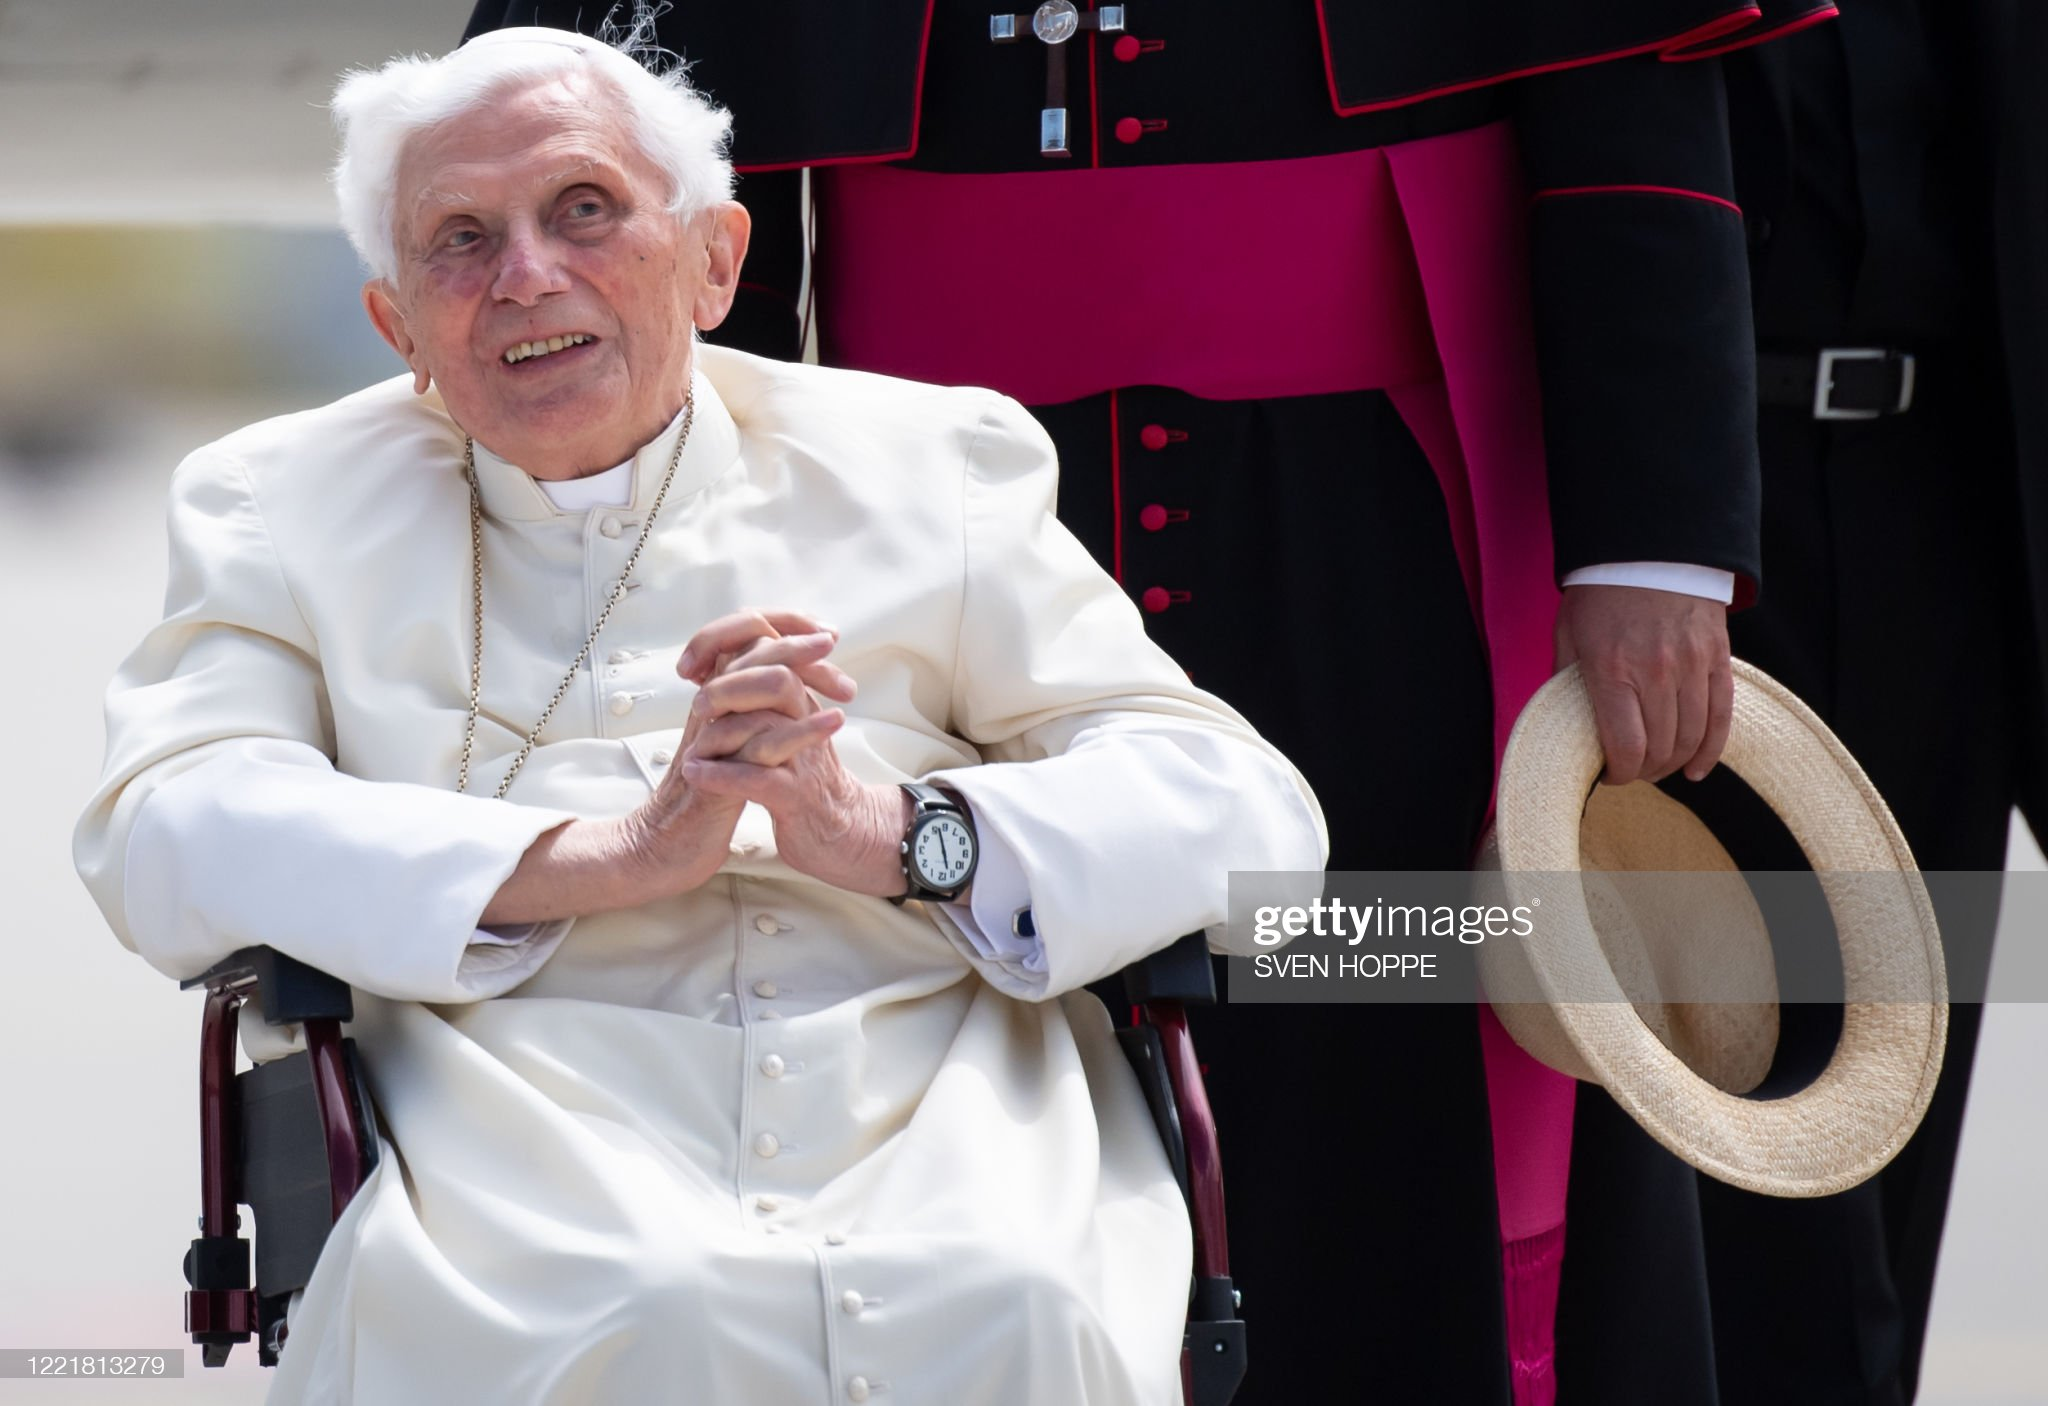 former-pope-benedict-xvi-poses-for-a-pic